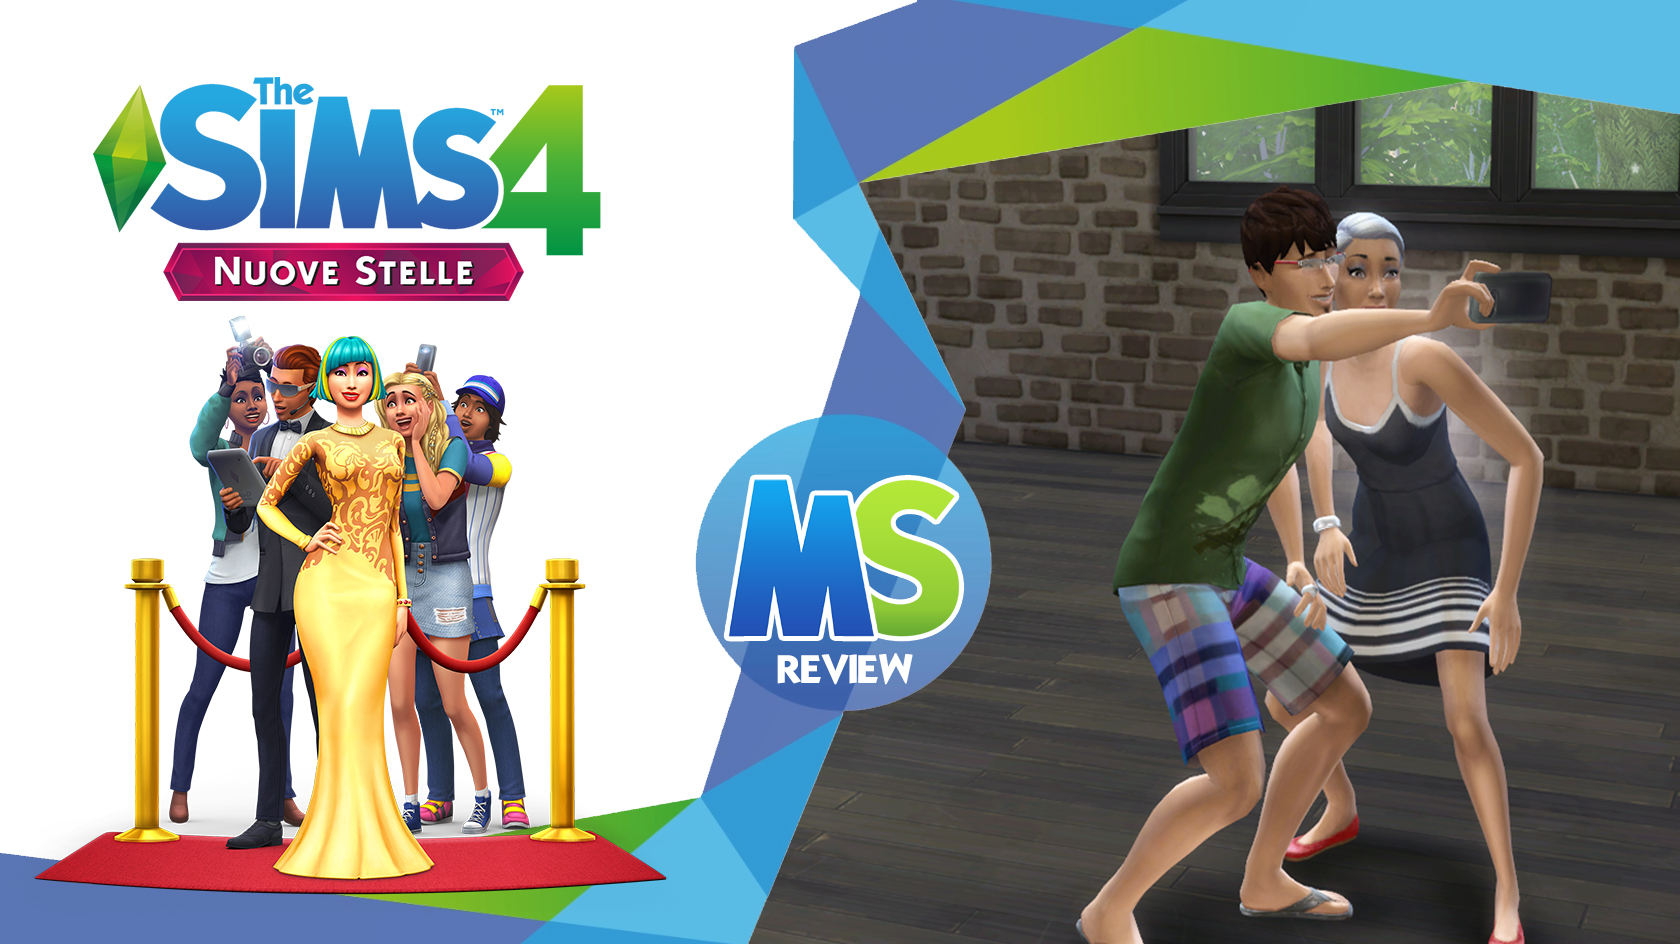 the sims 4 Nuove Stelle review logo